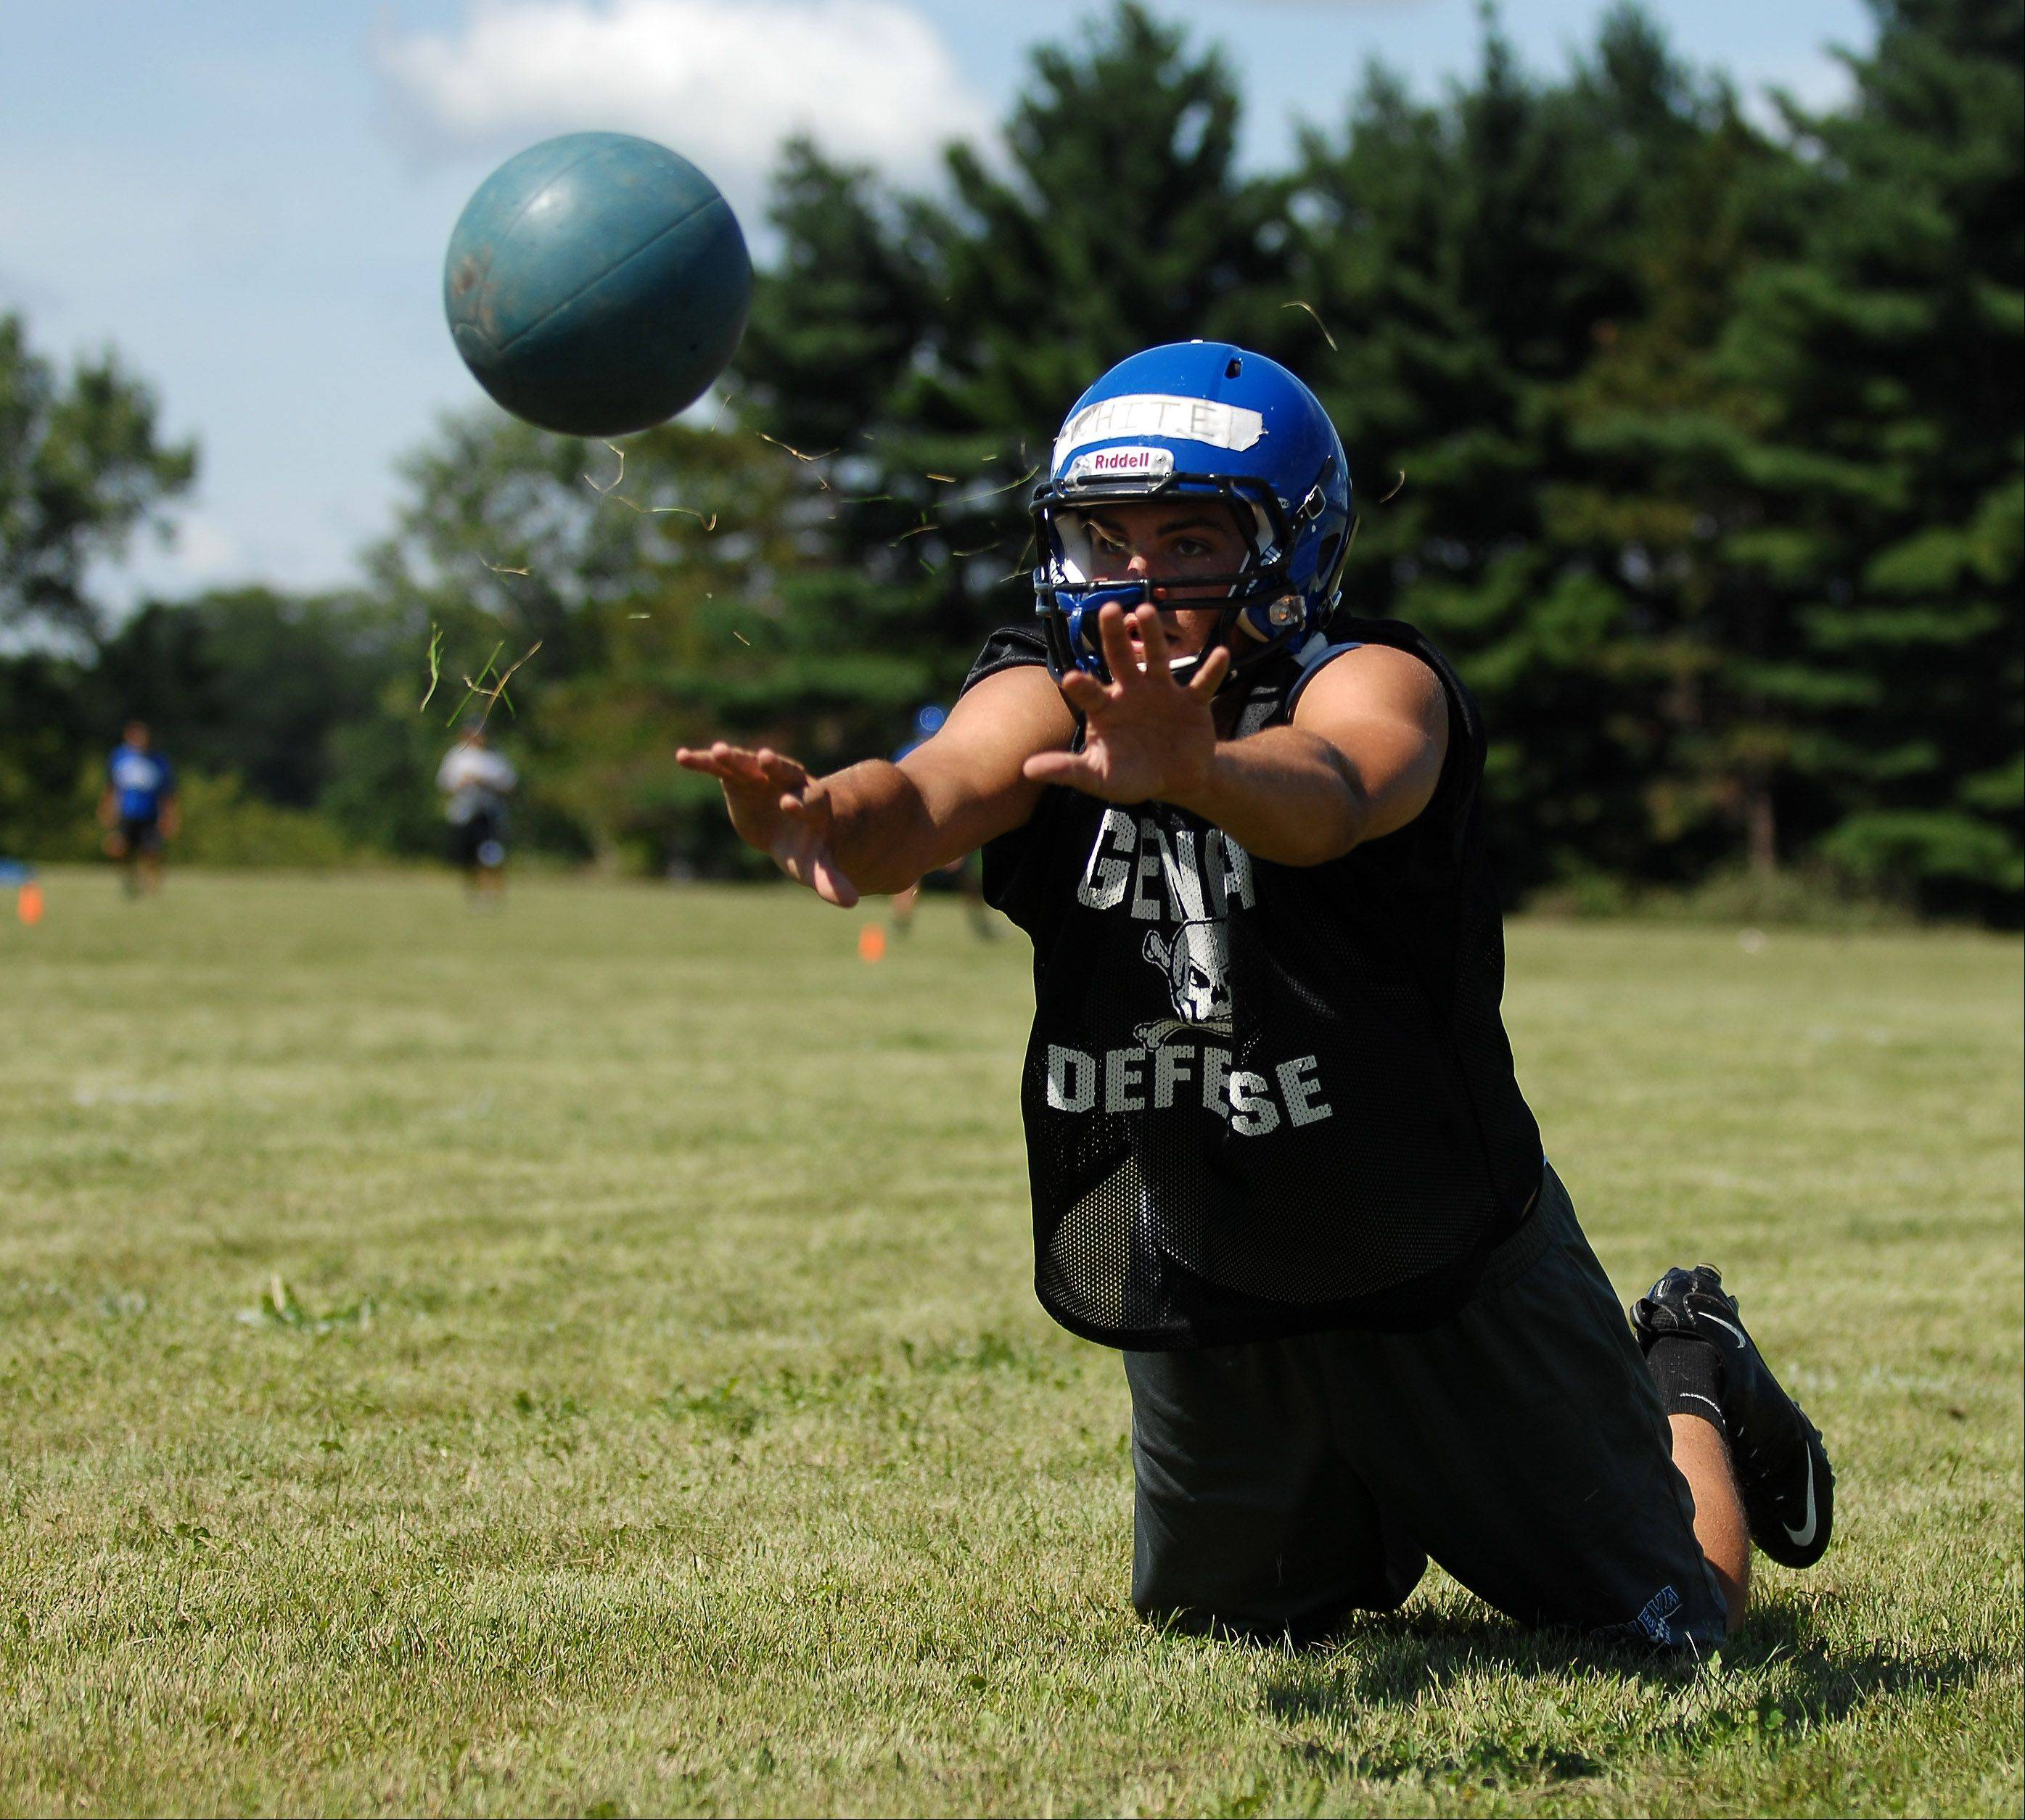 Drew White lunges and throws a medicine ball during the first day of football practice for Geneva High School at the former Broadview Academy site in La Fox Wednesday.